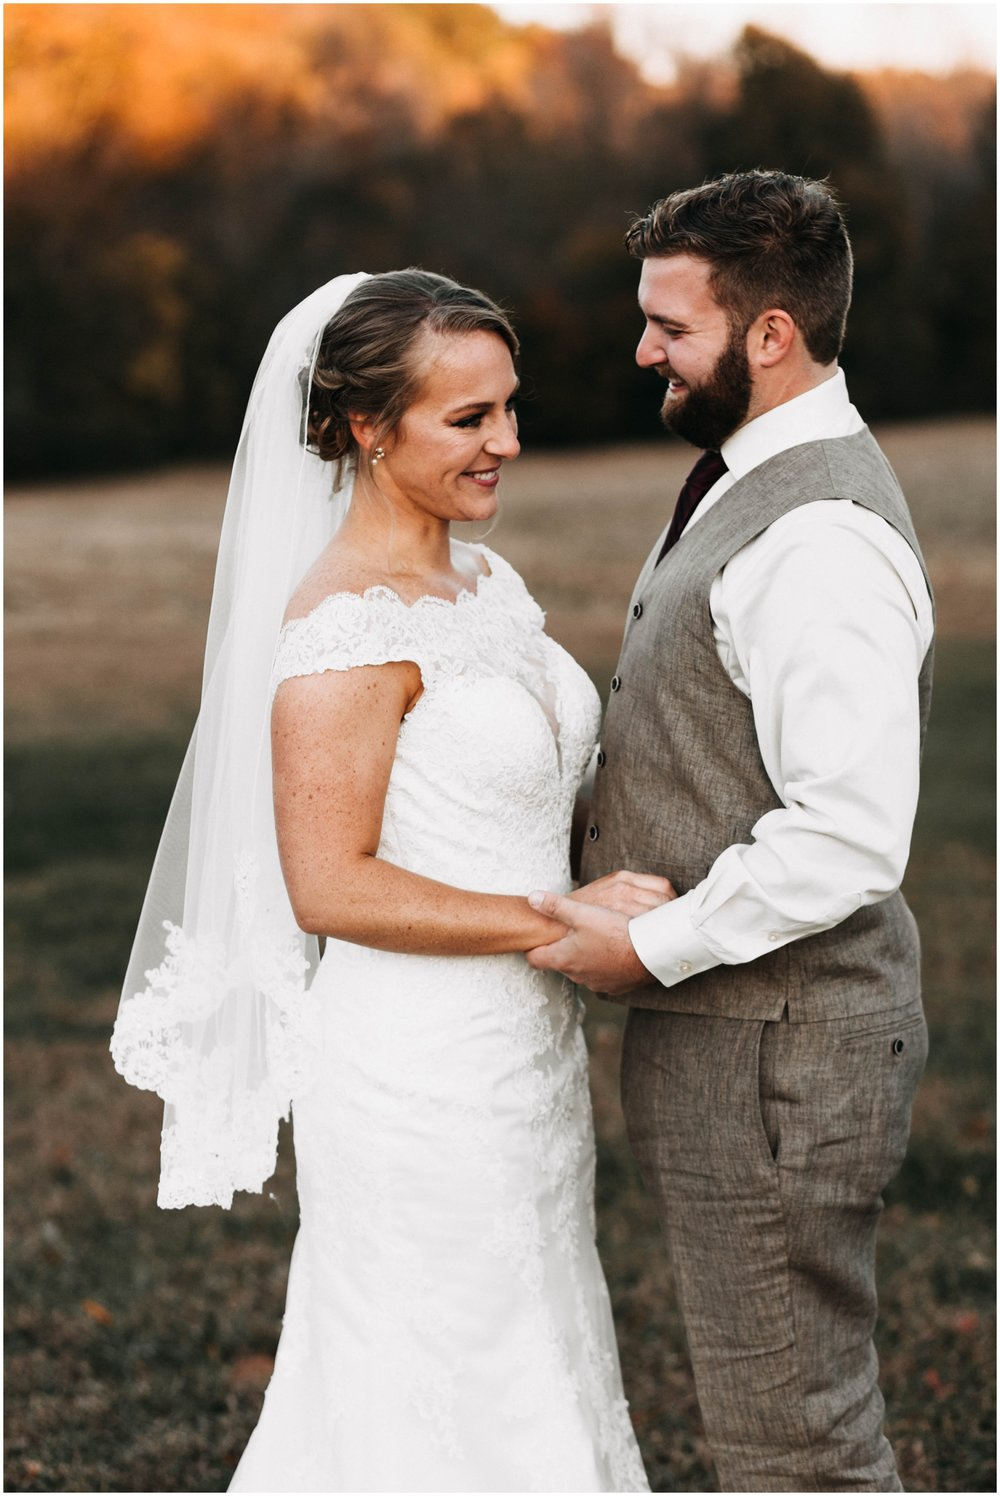 Jess+Dan_rustic_southern_farm_fall_wedding_charlotte_north carolina_taylor powers_0214.jpg